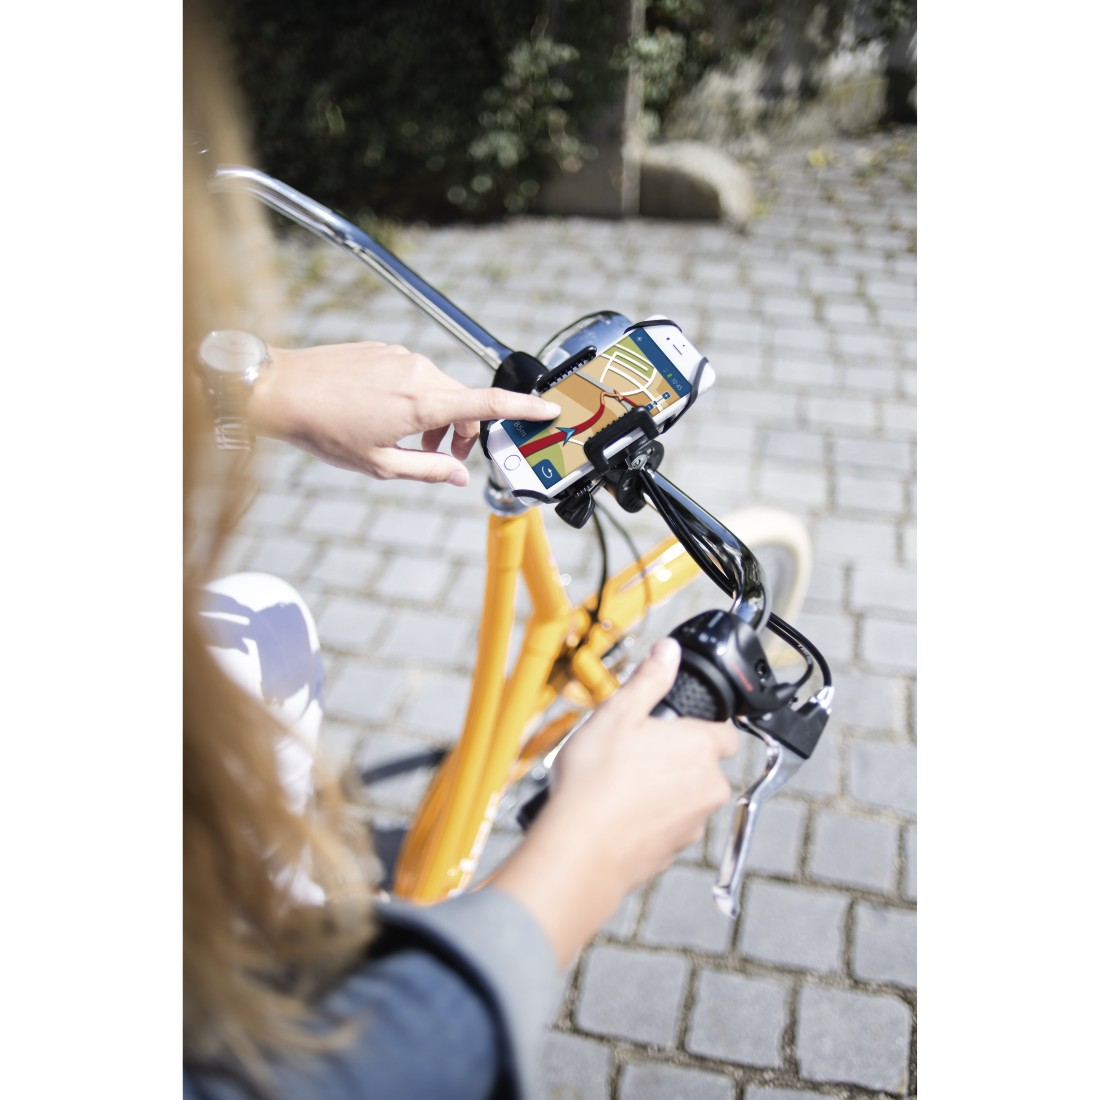 awx High-Res Appliance - Hama, Universal Smartphone Bike Holder for devices with a width between 5 to 9 cm